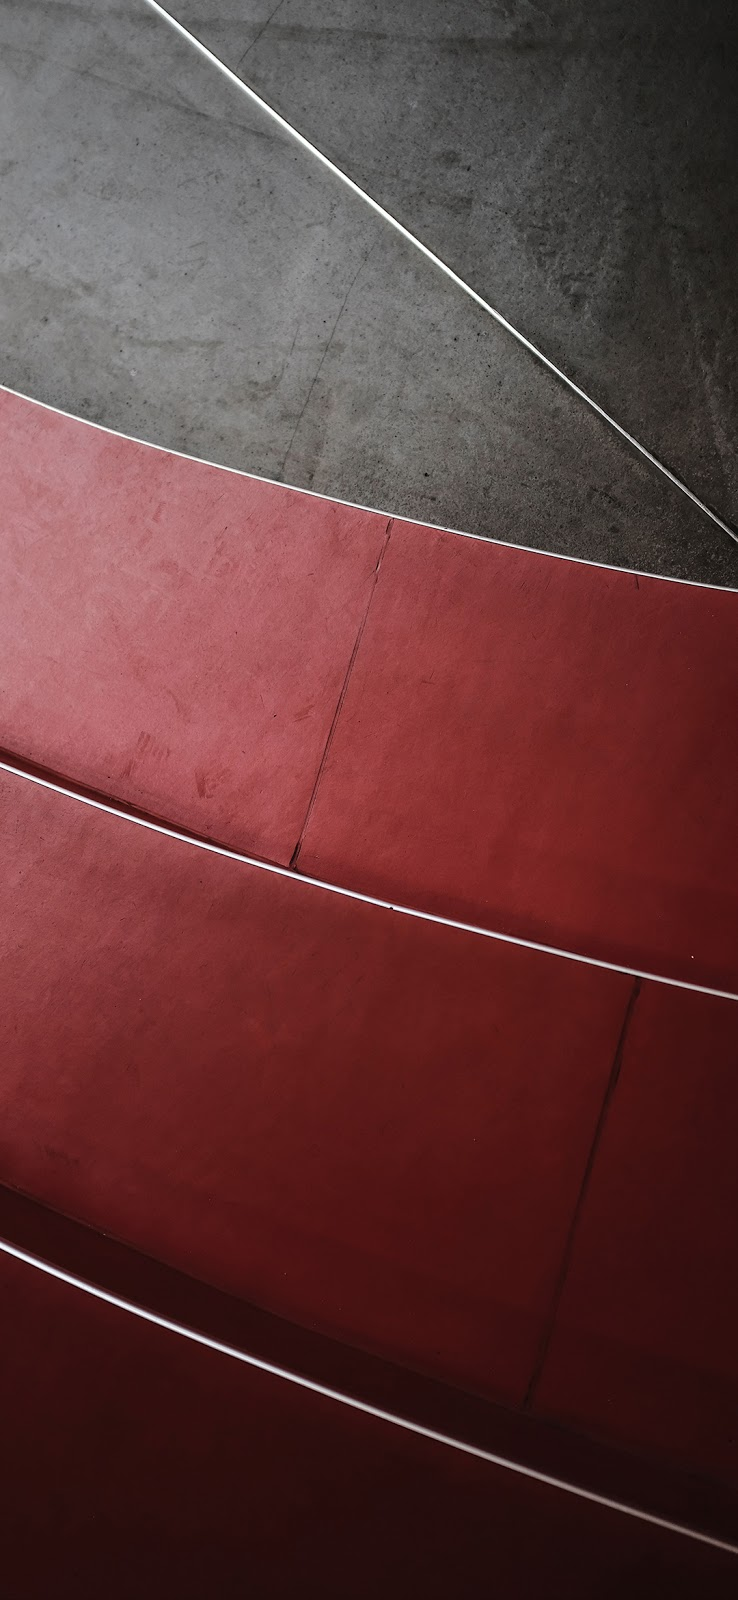 cool abstract concrete surfaces wallpaper